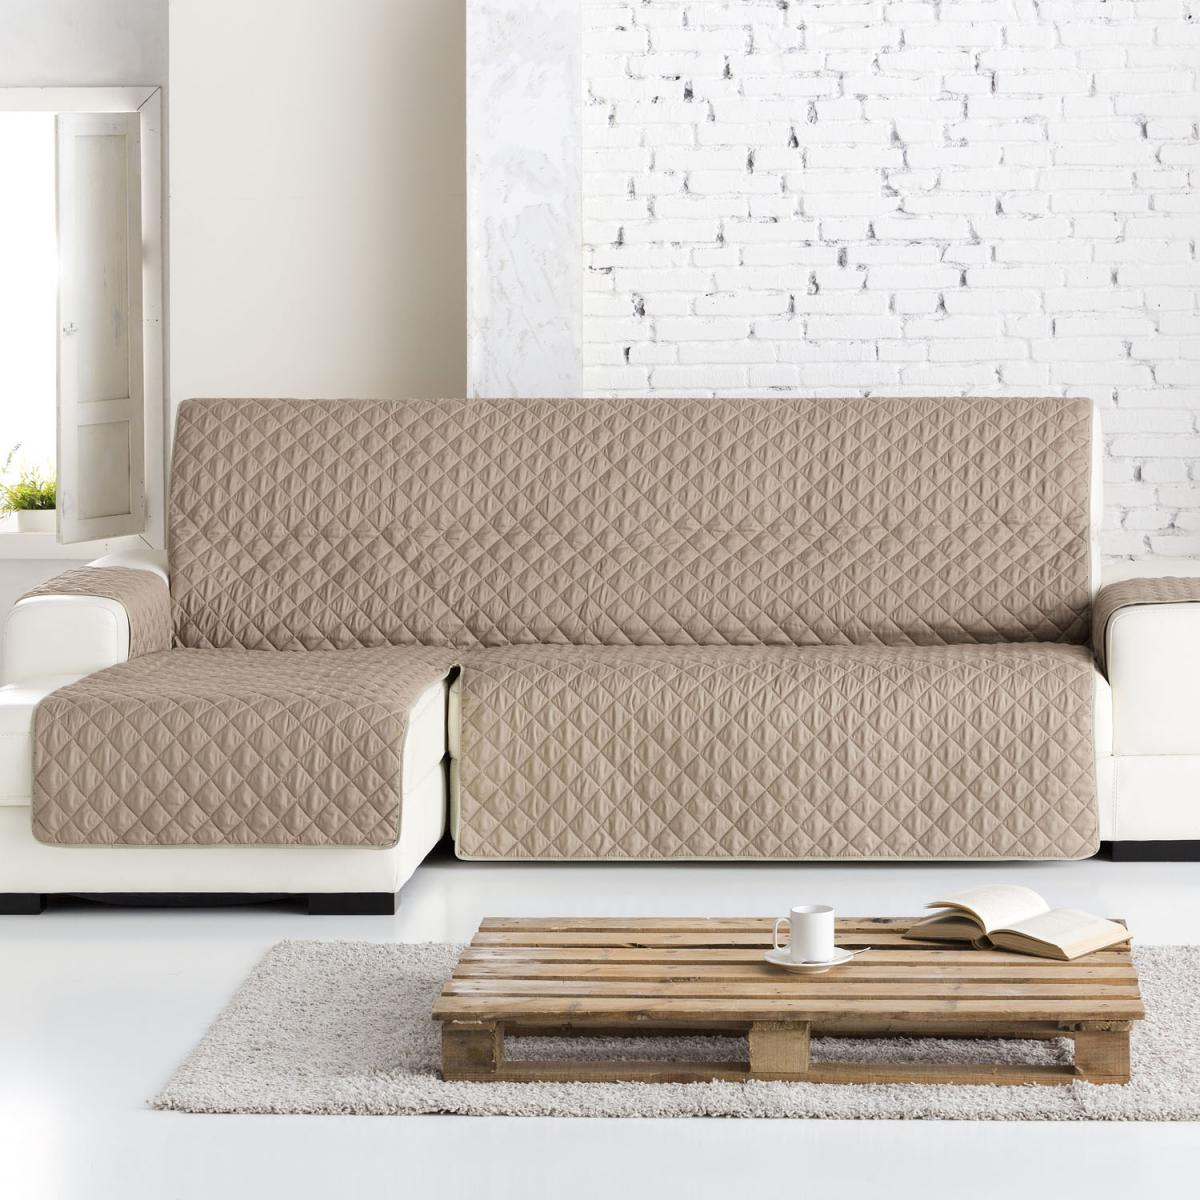 Funda de sofa pr ctica dual quilt for Funda sofa 4 plazas